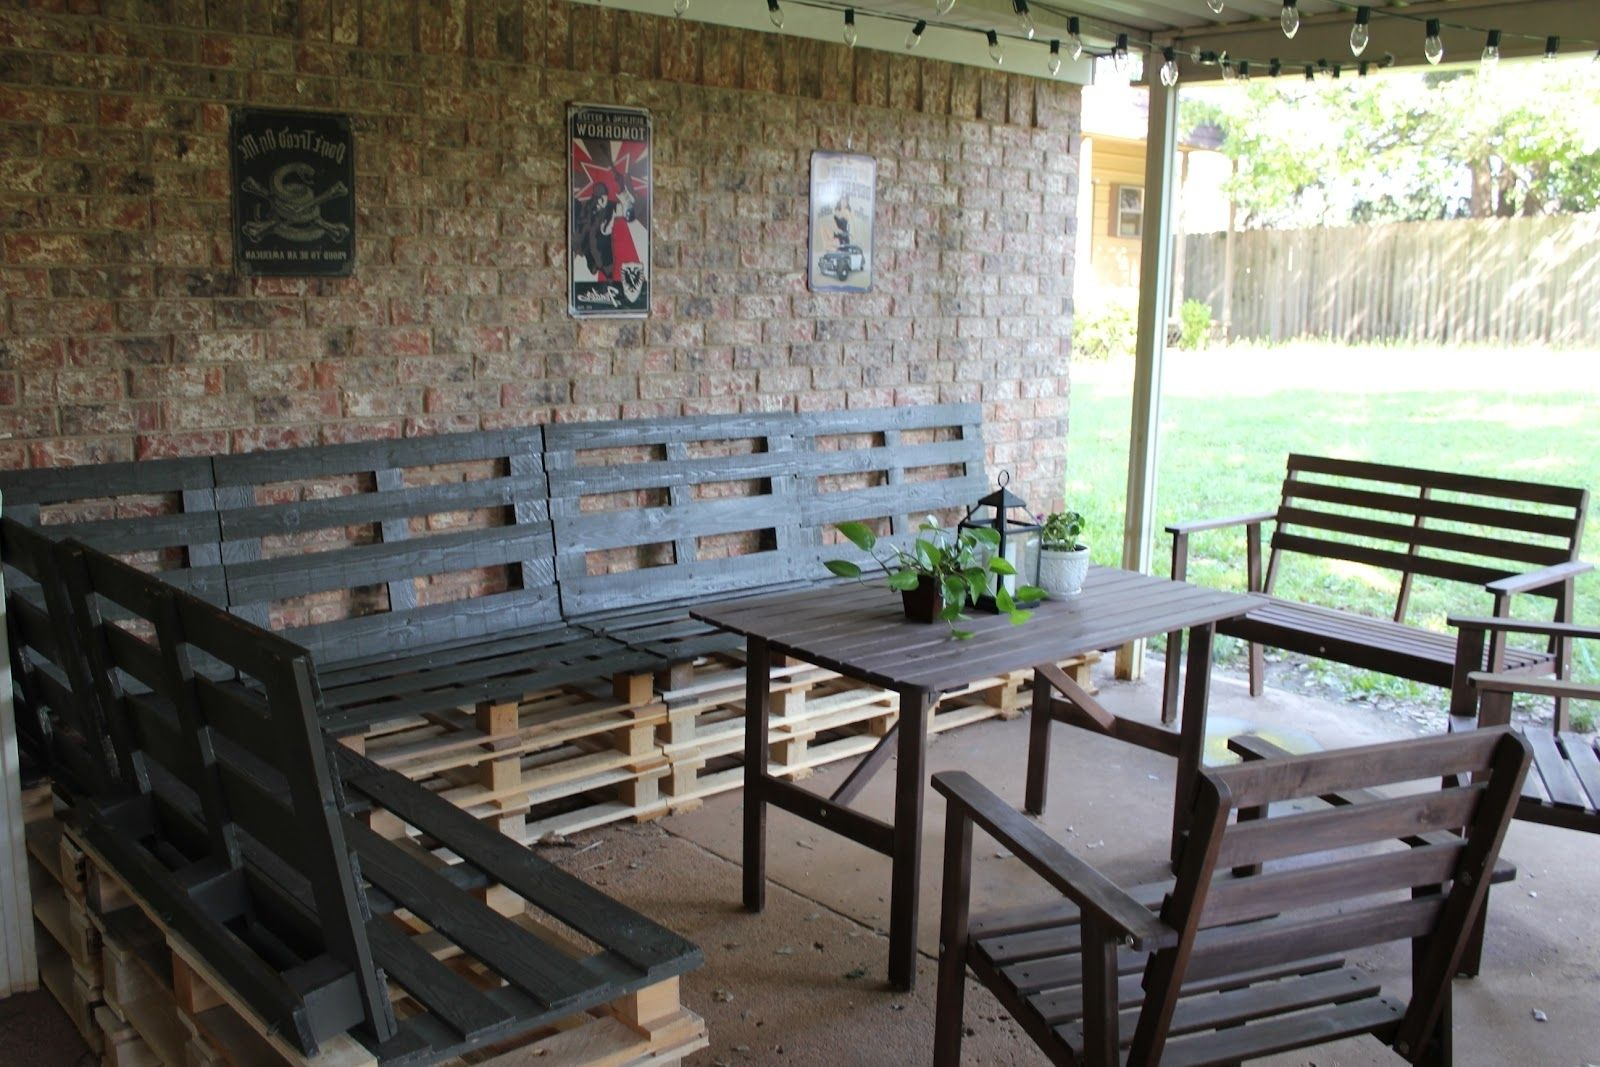 How To Make Patio Furniture Out Of Skids - Decoraciones Party